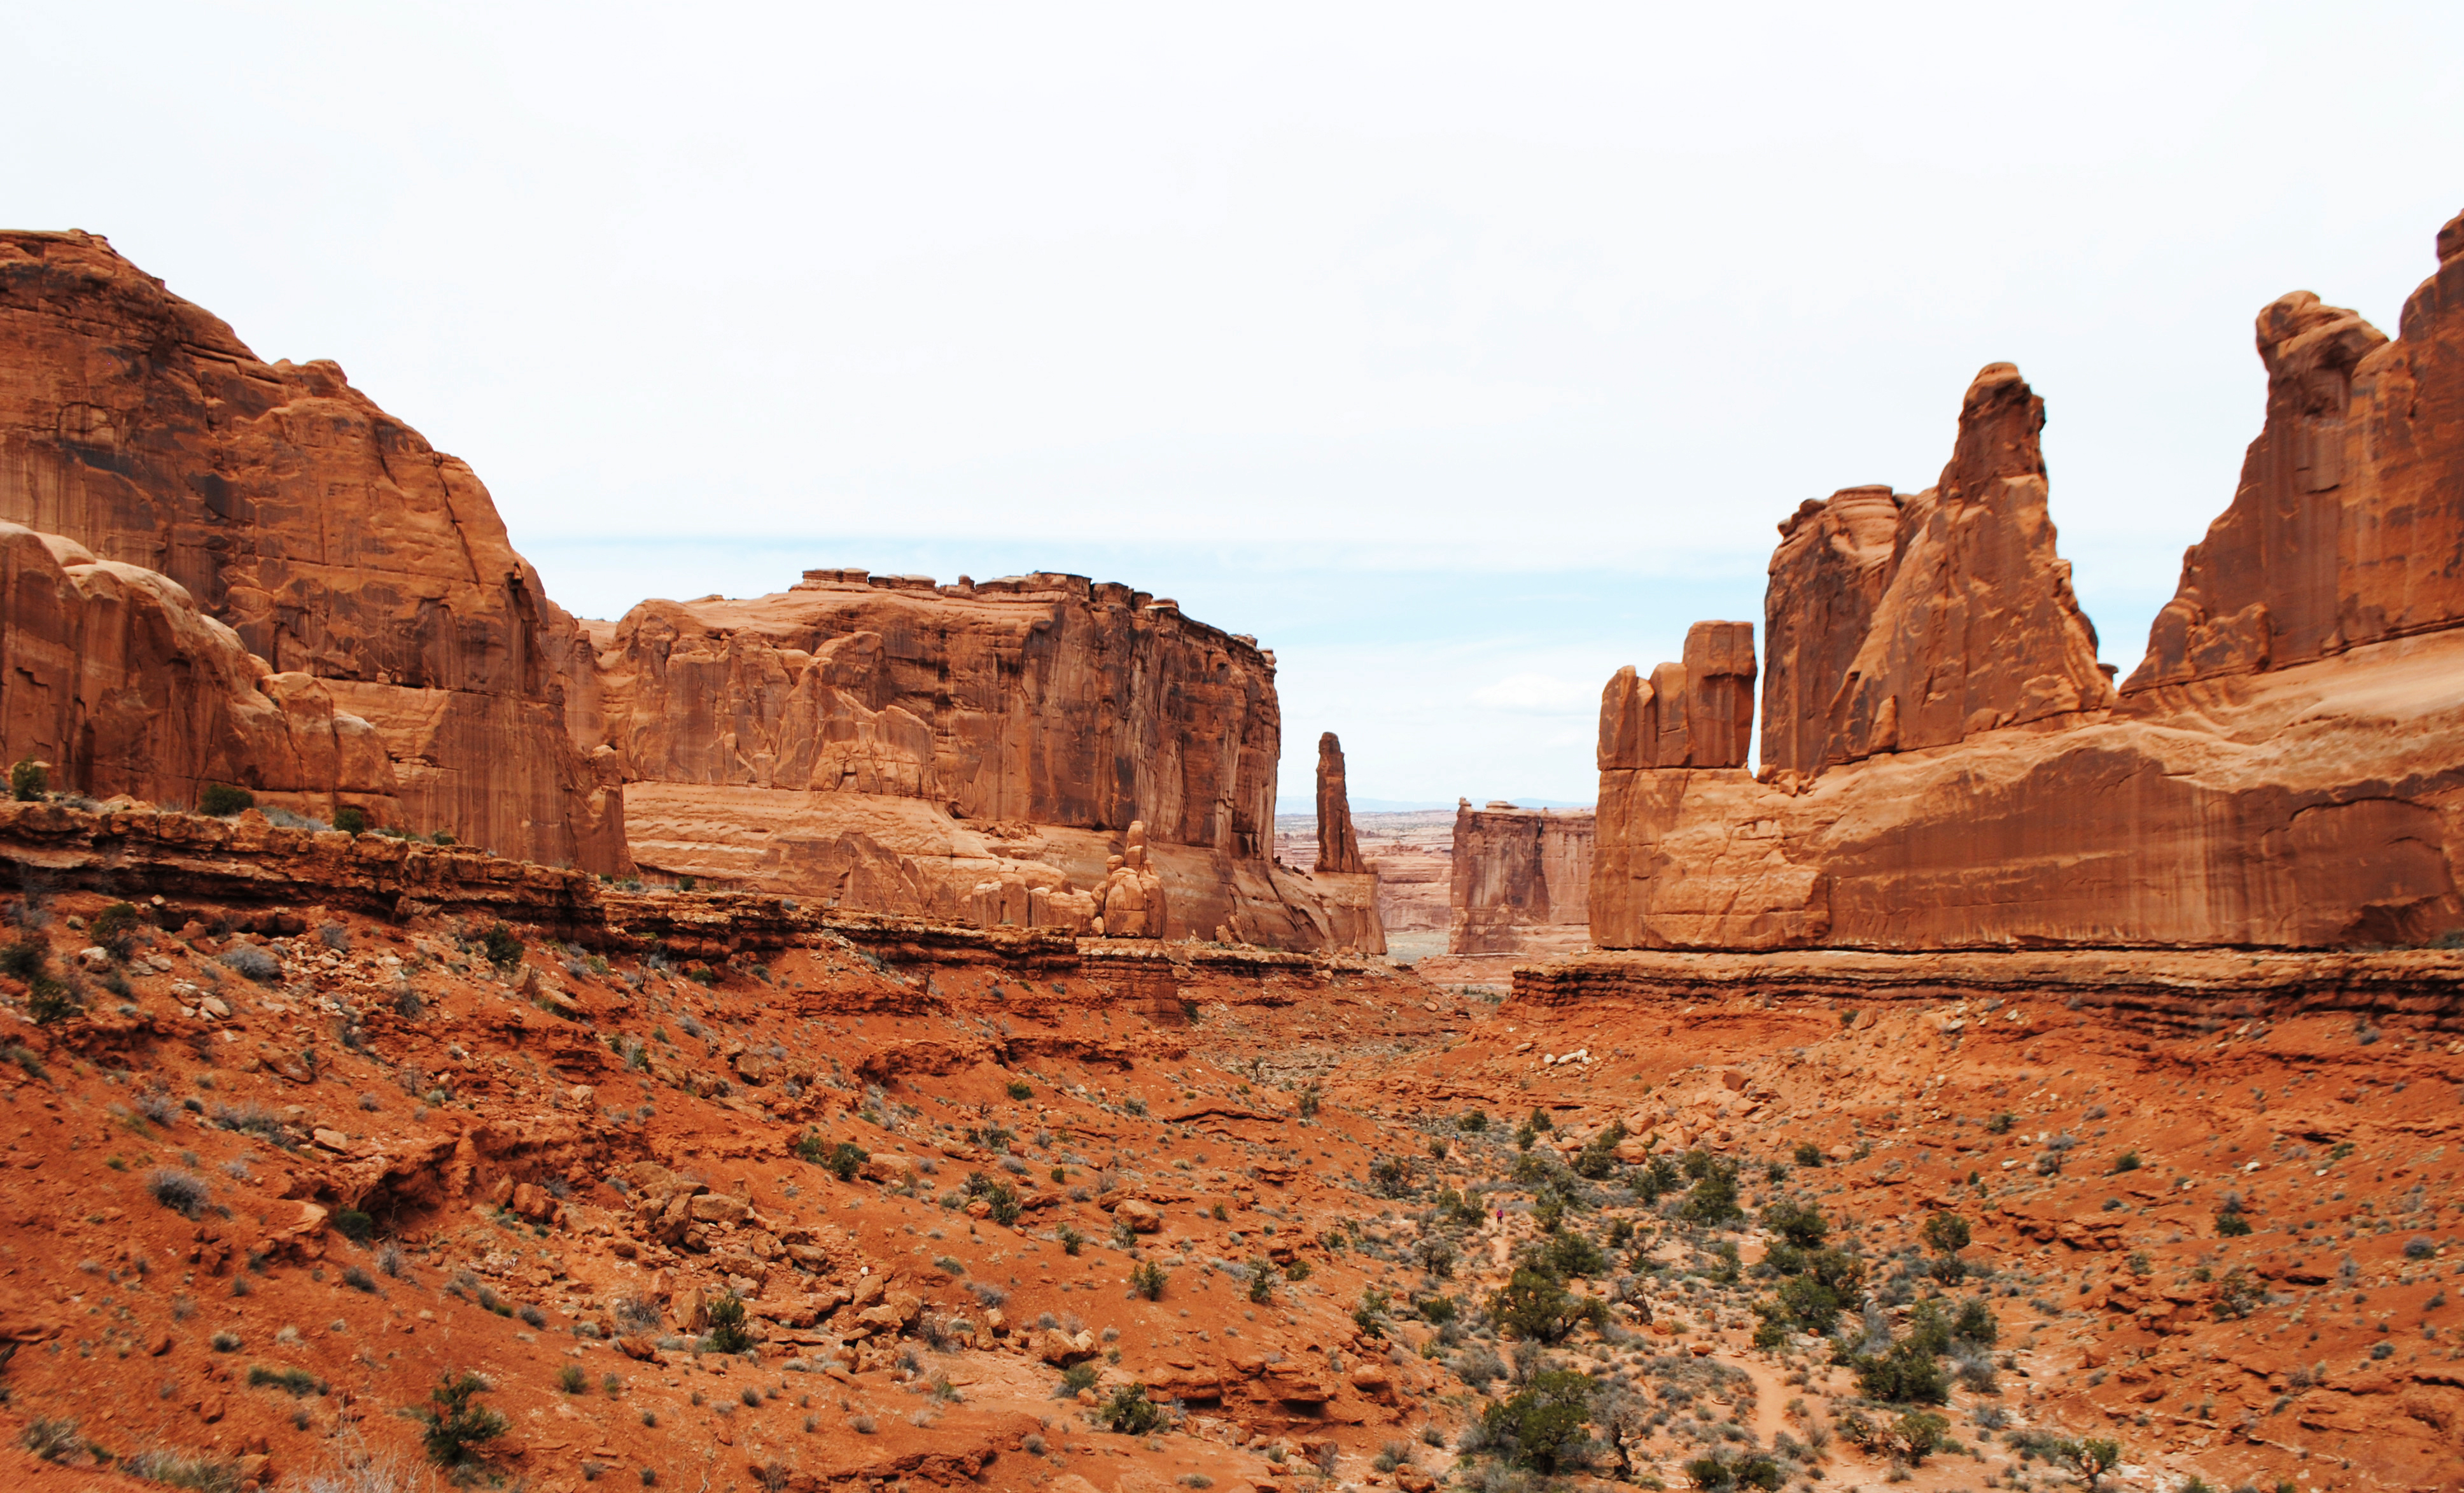 Of Wild West Rustic Arches And Godliness Hello From Utah